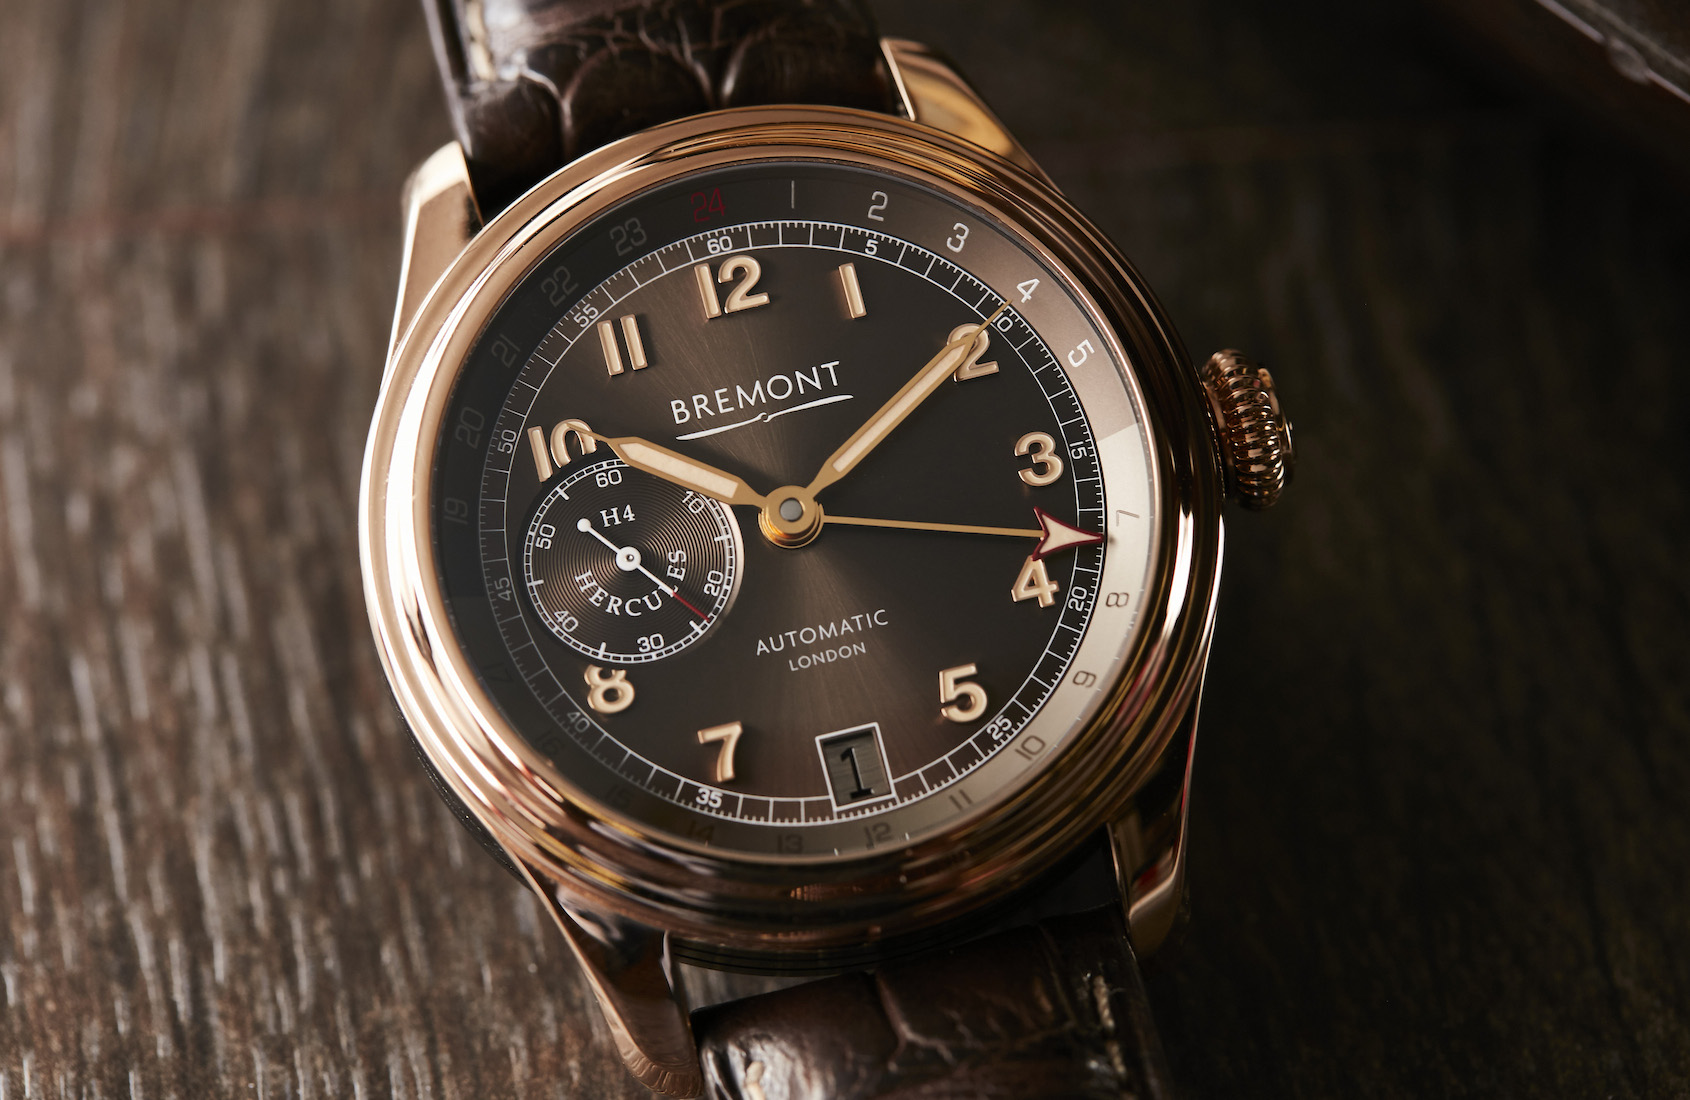 VIDEO: The mythical Bremont H-4 Hercules